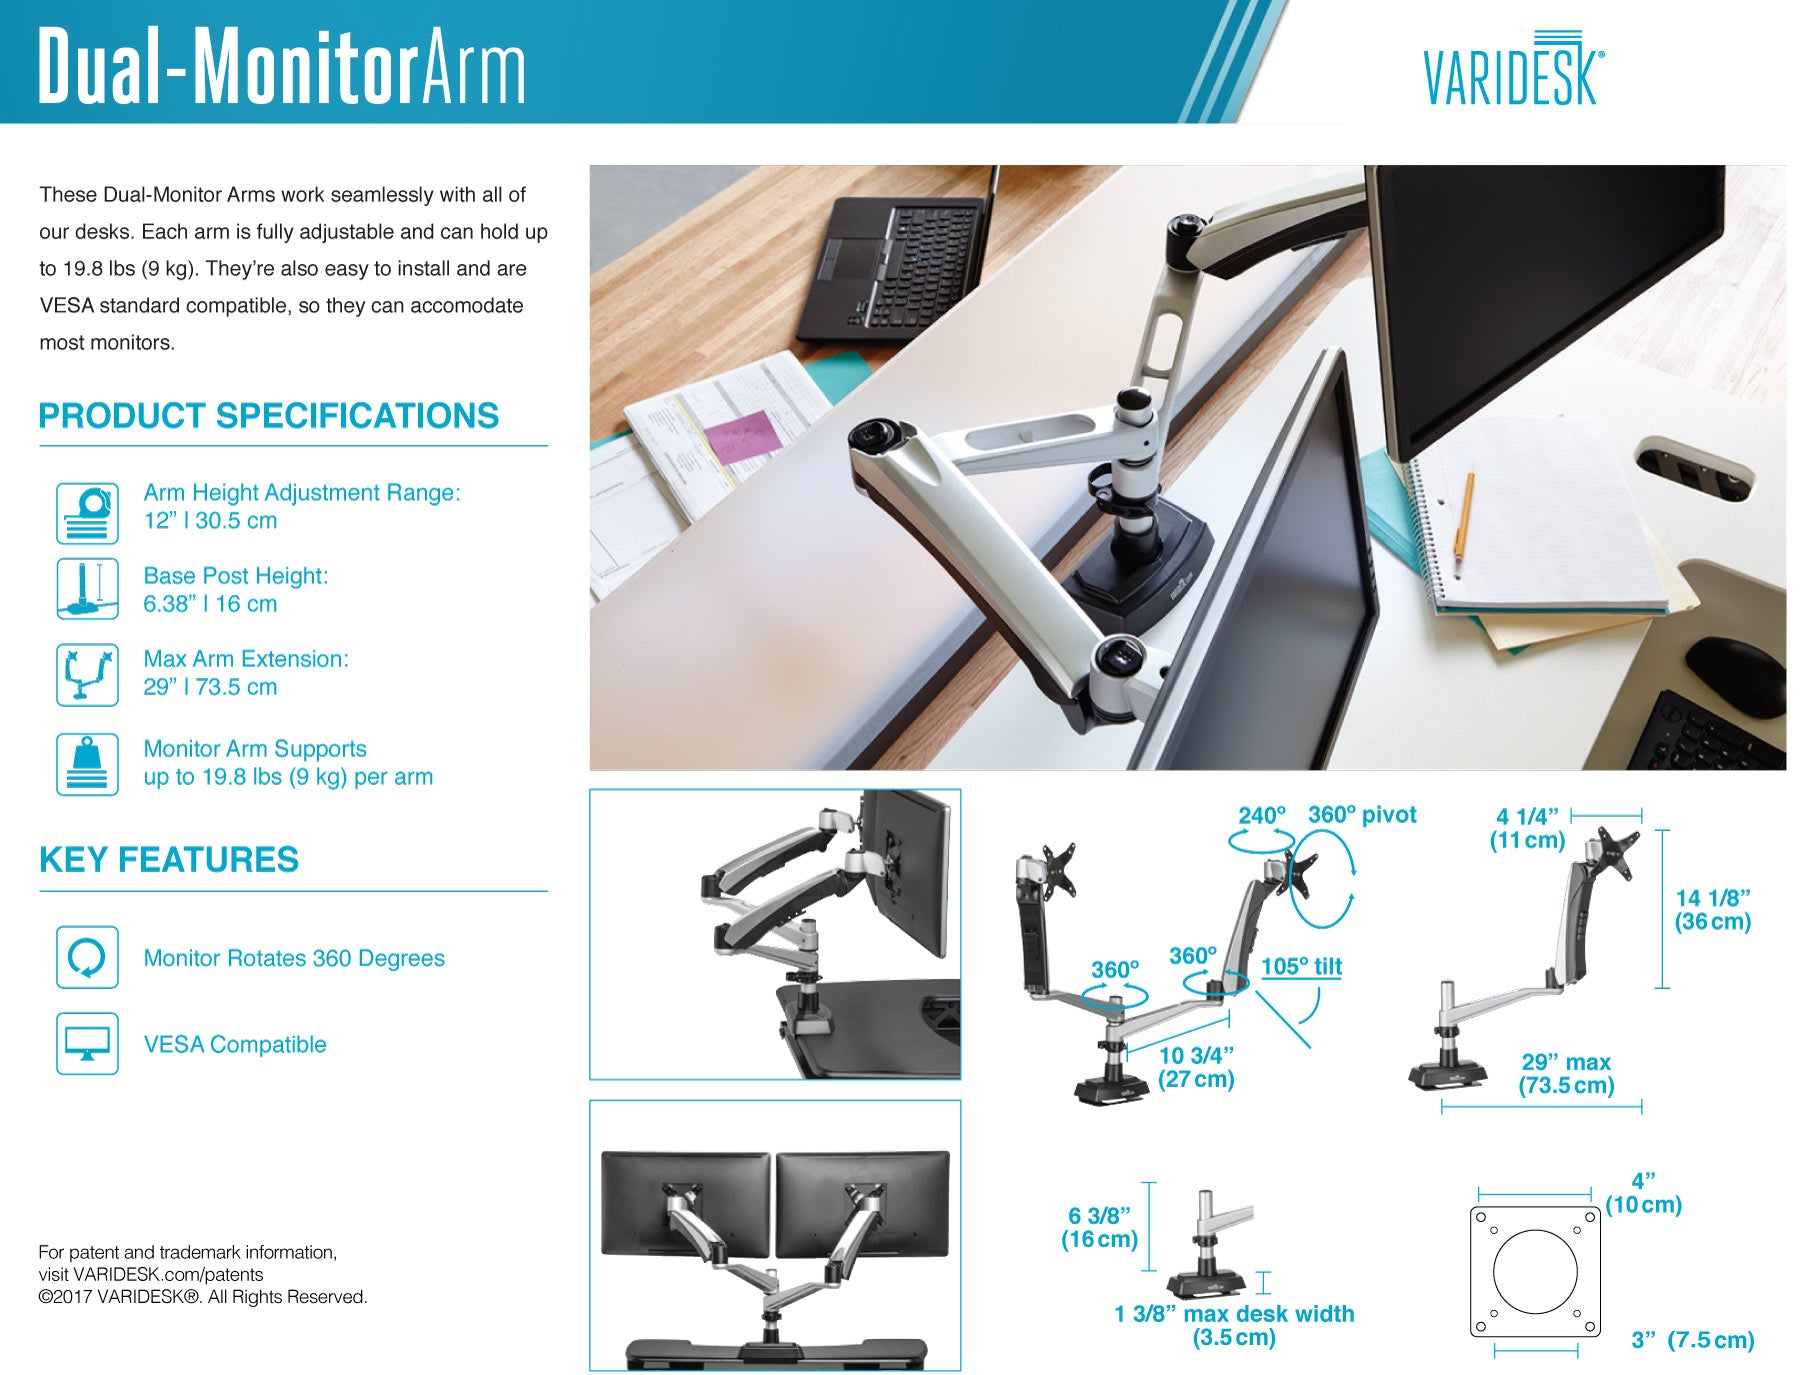 varidesk-dual-monitor-arm